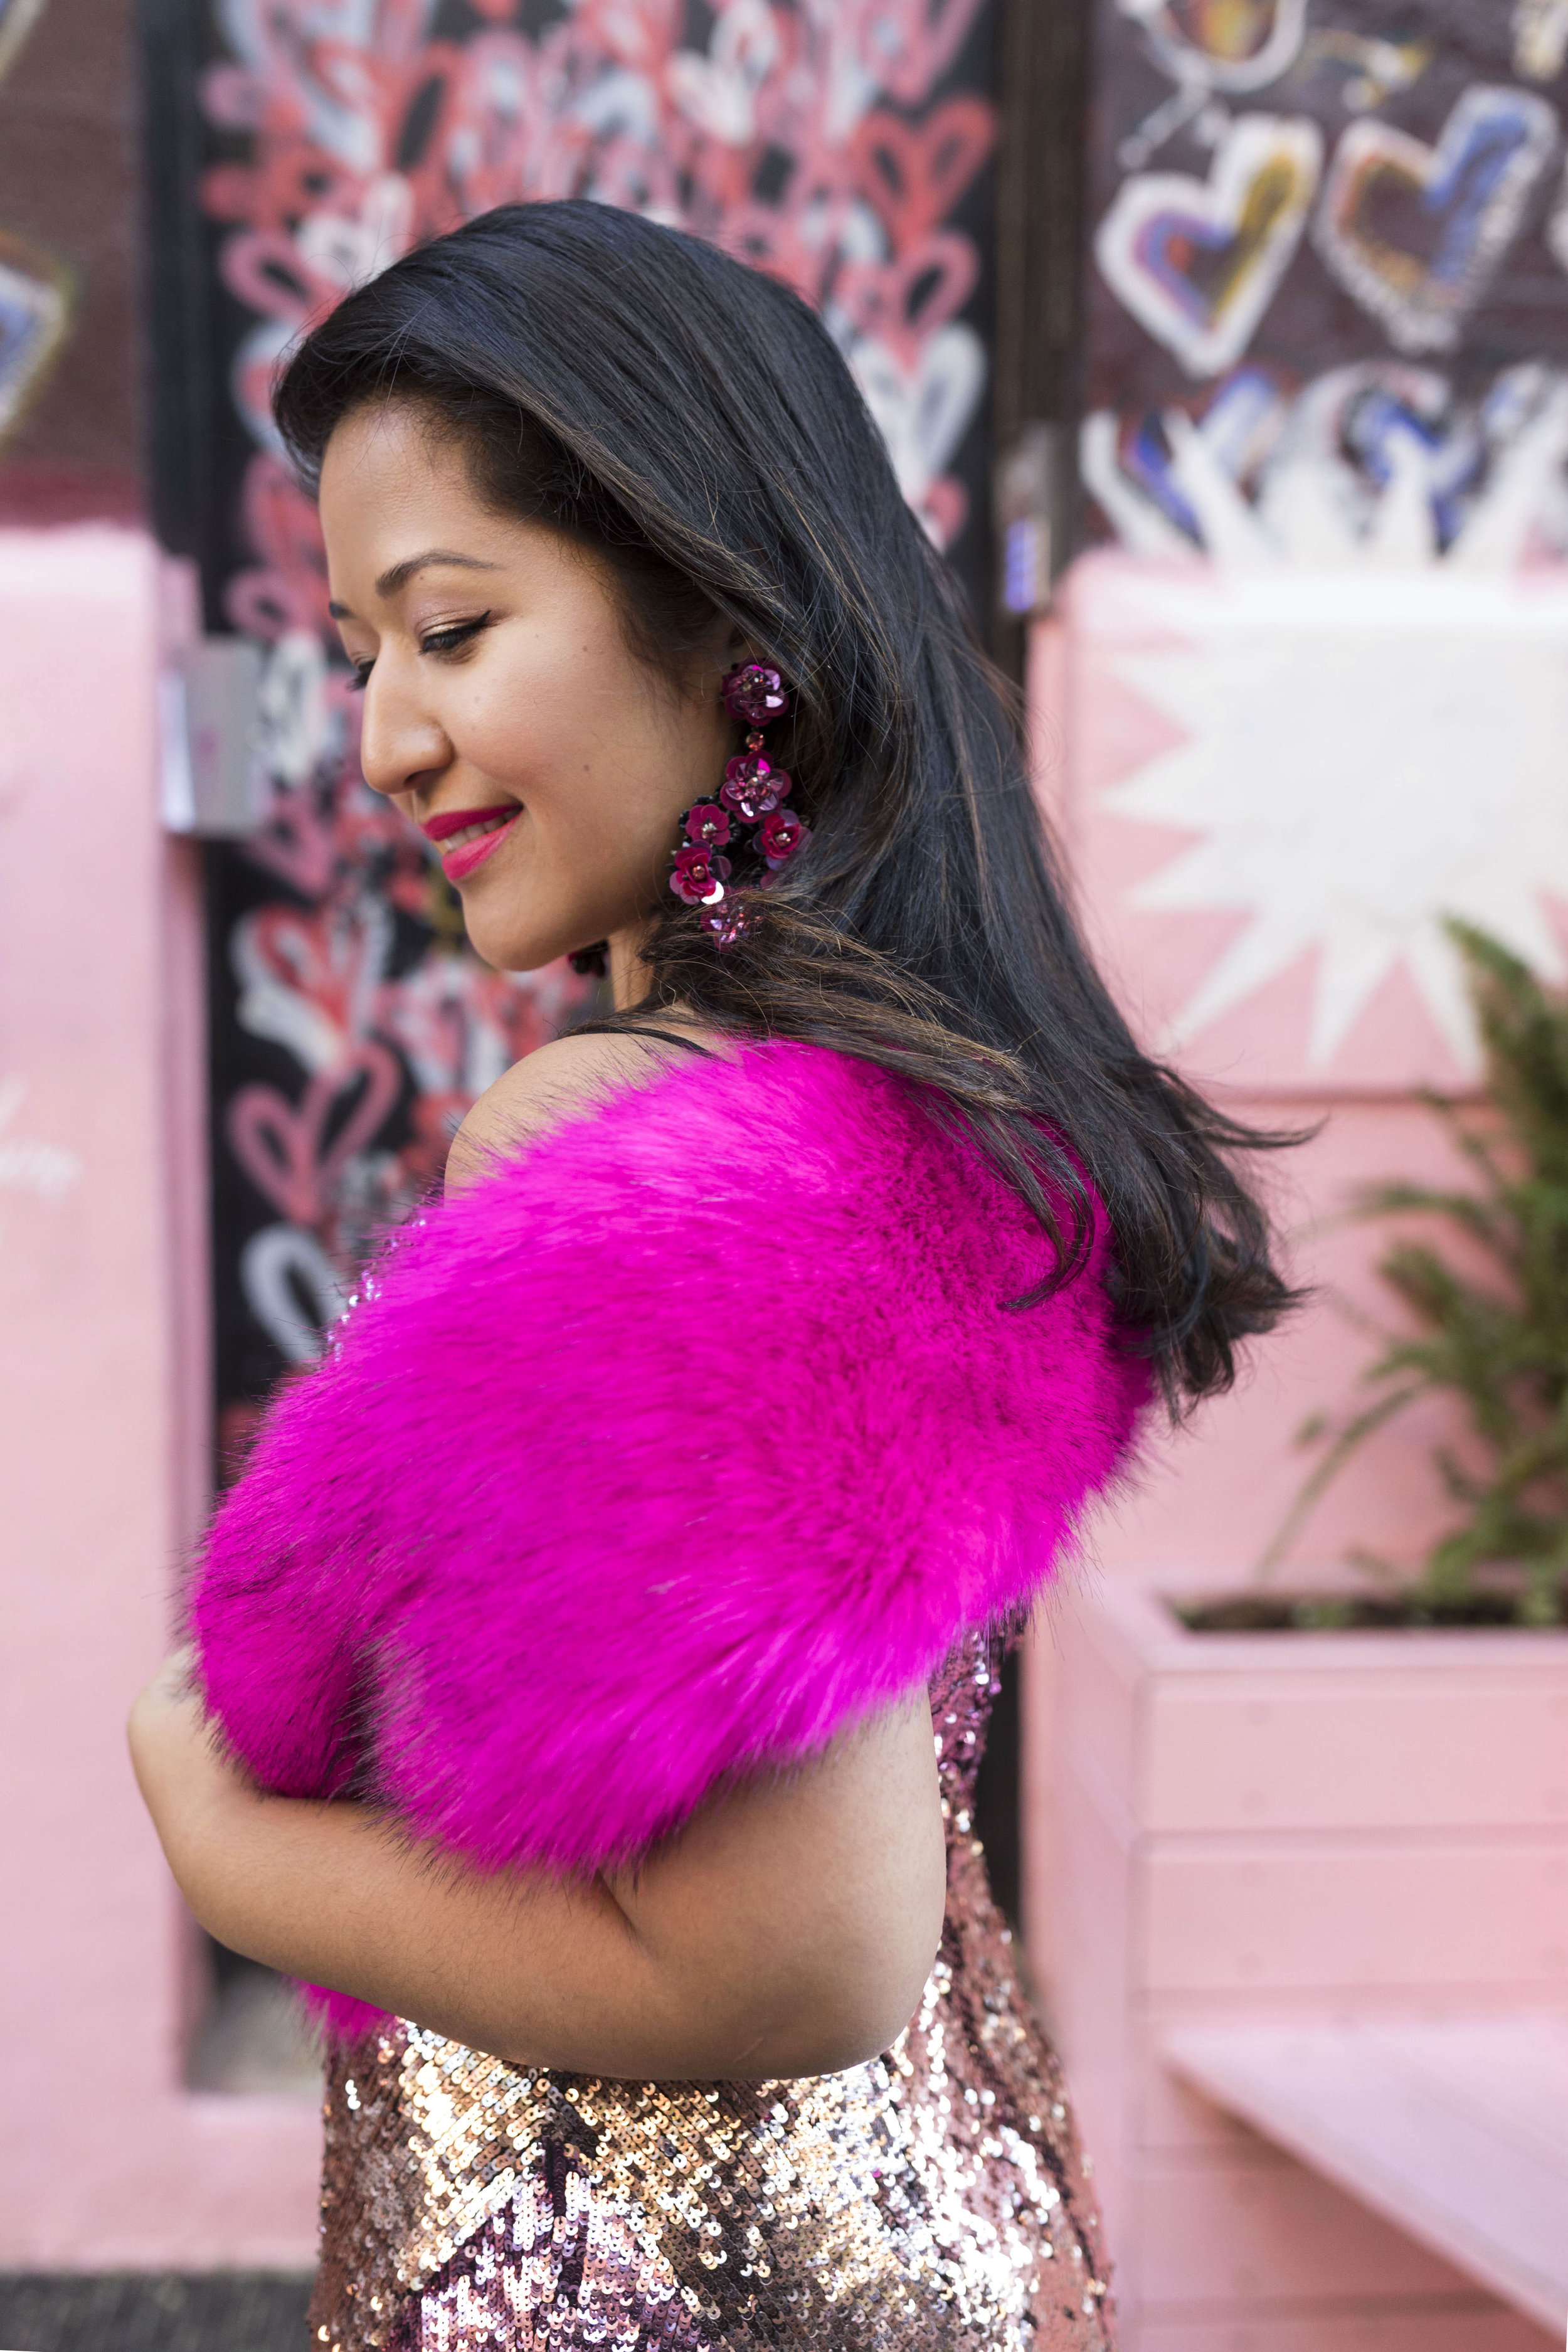 Krity S x New Years Eve Outfit x Aidan Mattox Color Block Pink Sequin Short Dress with Forever 21 Faux Fur Scarf 7.jpg